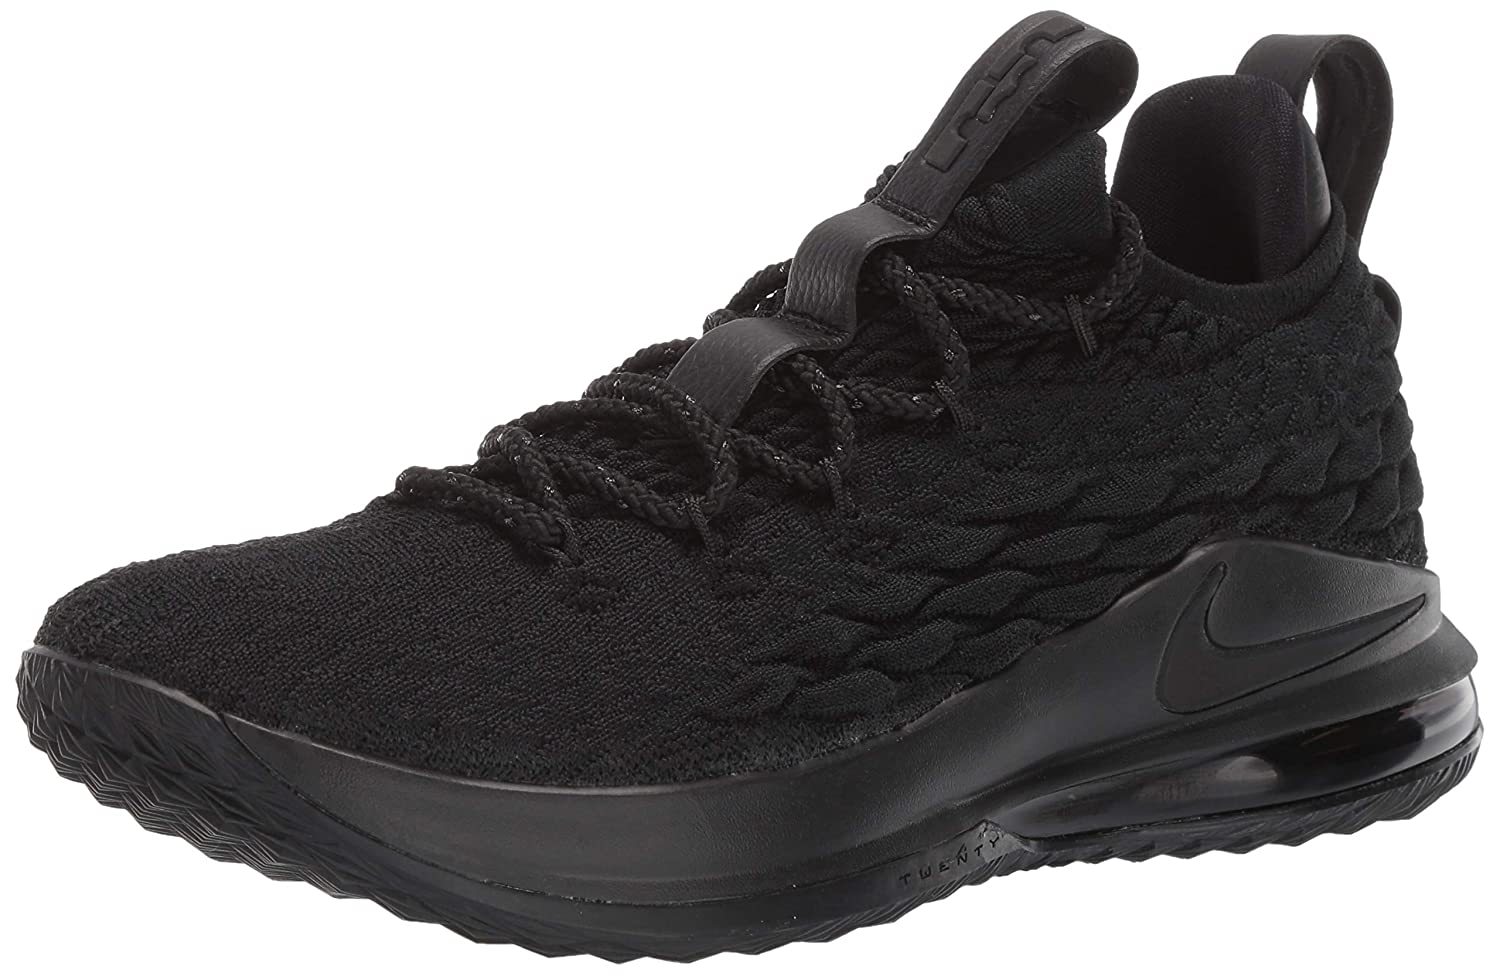 hot sale online b99f0 2087f Amazon.com | Nike Lebron 15 Low 'Triple Black' - AO1755-004 ...